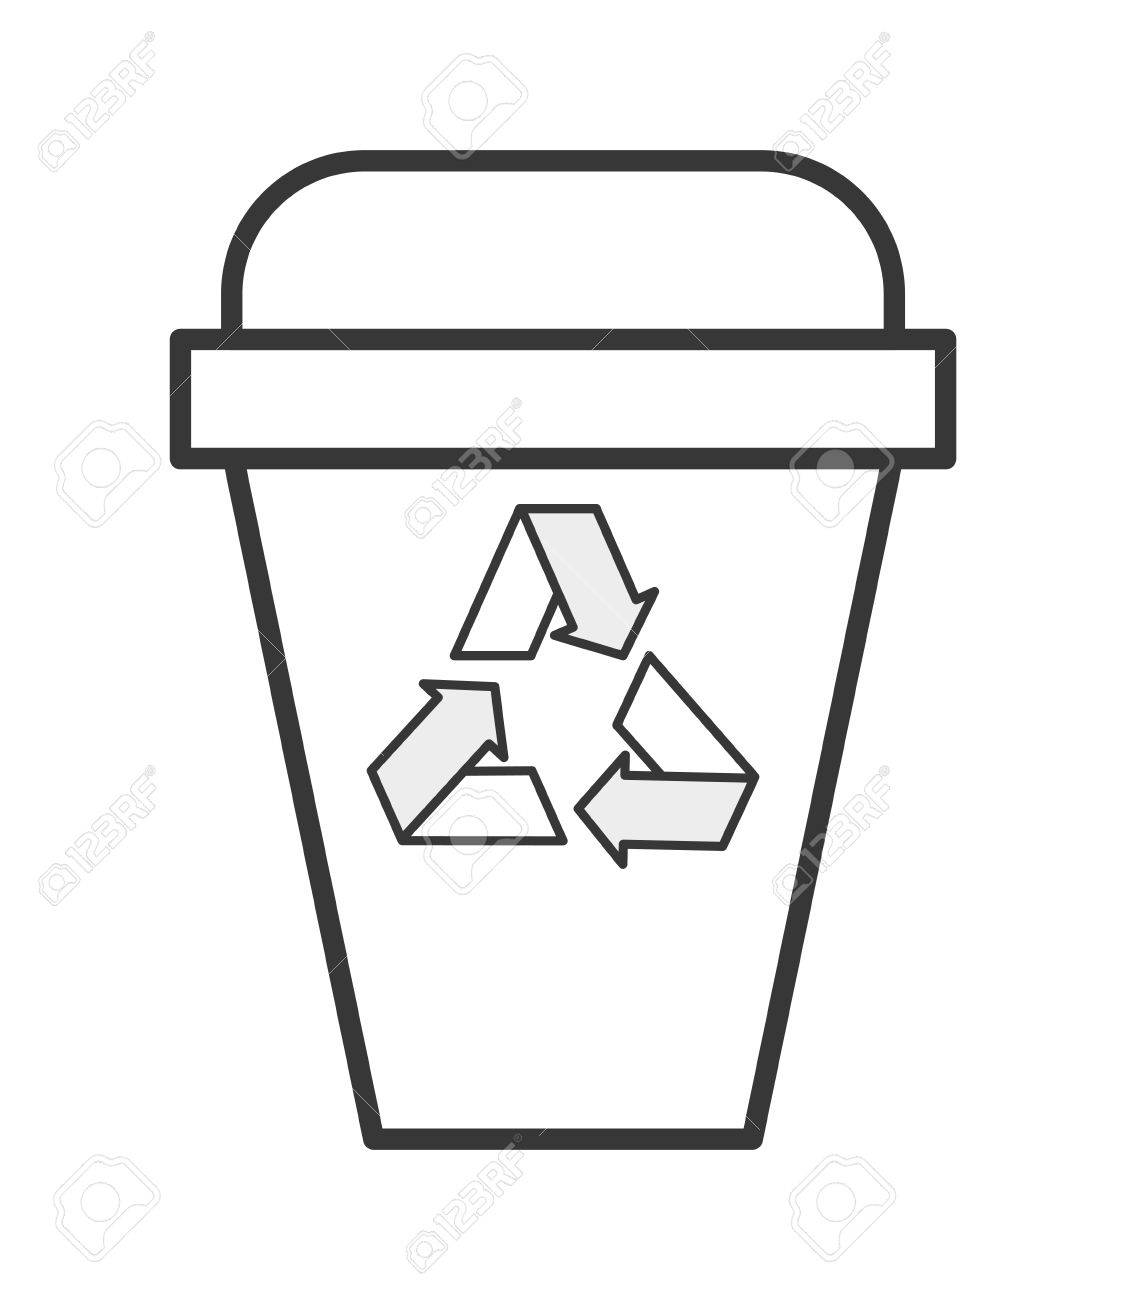 1406 Recycle free clipart.